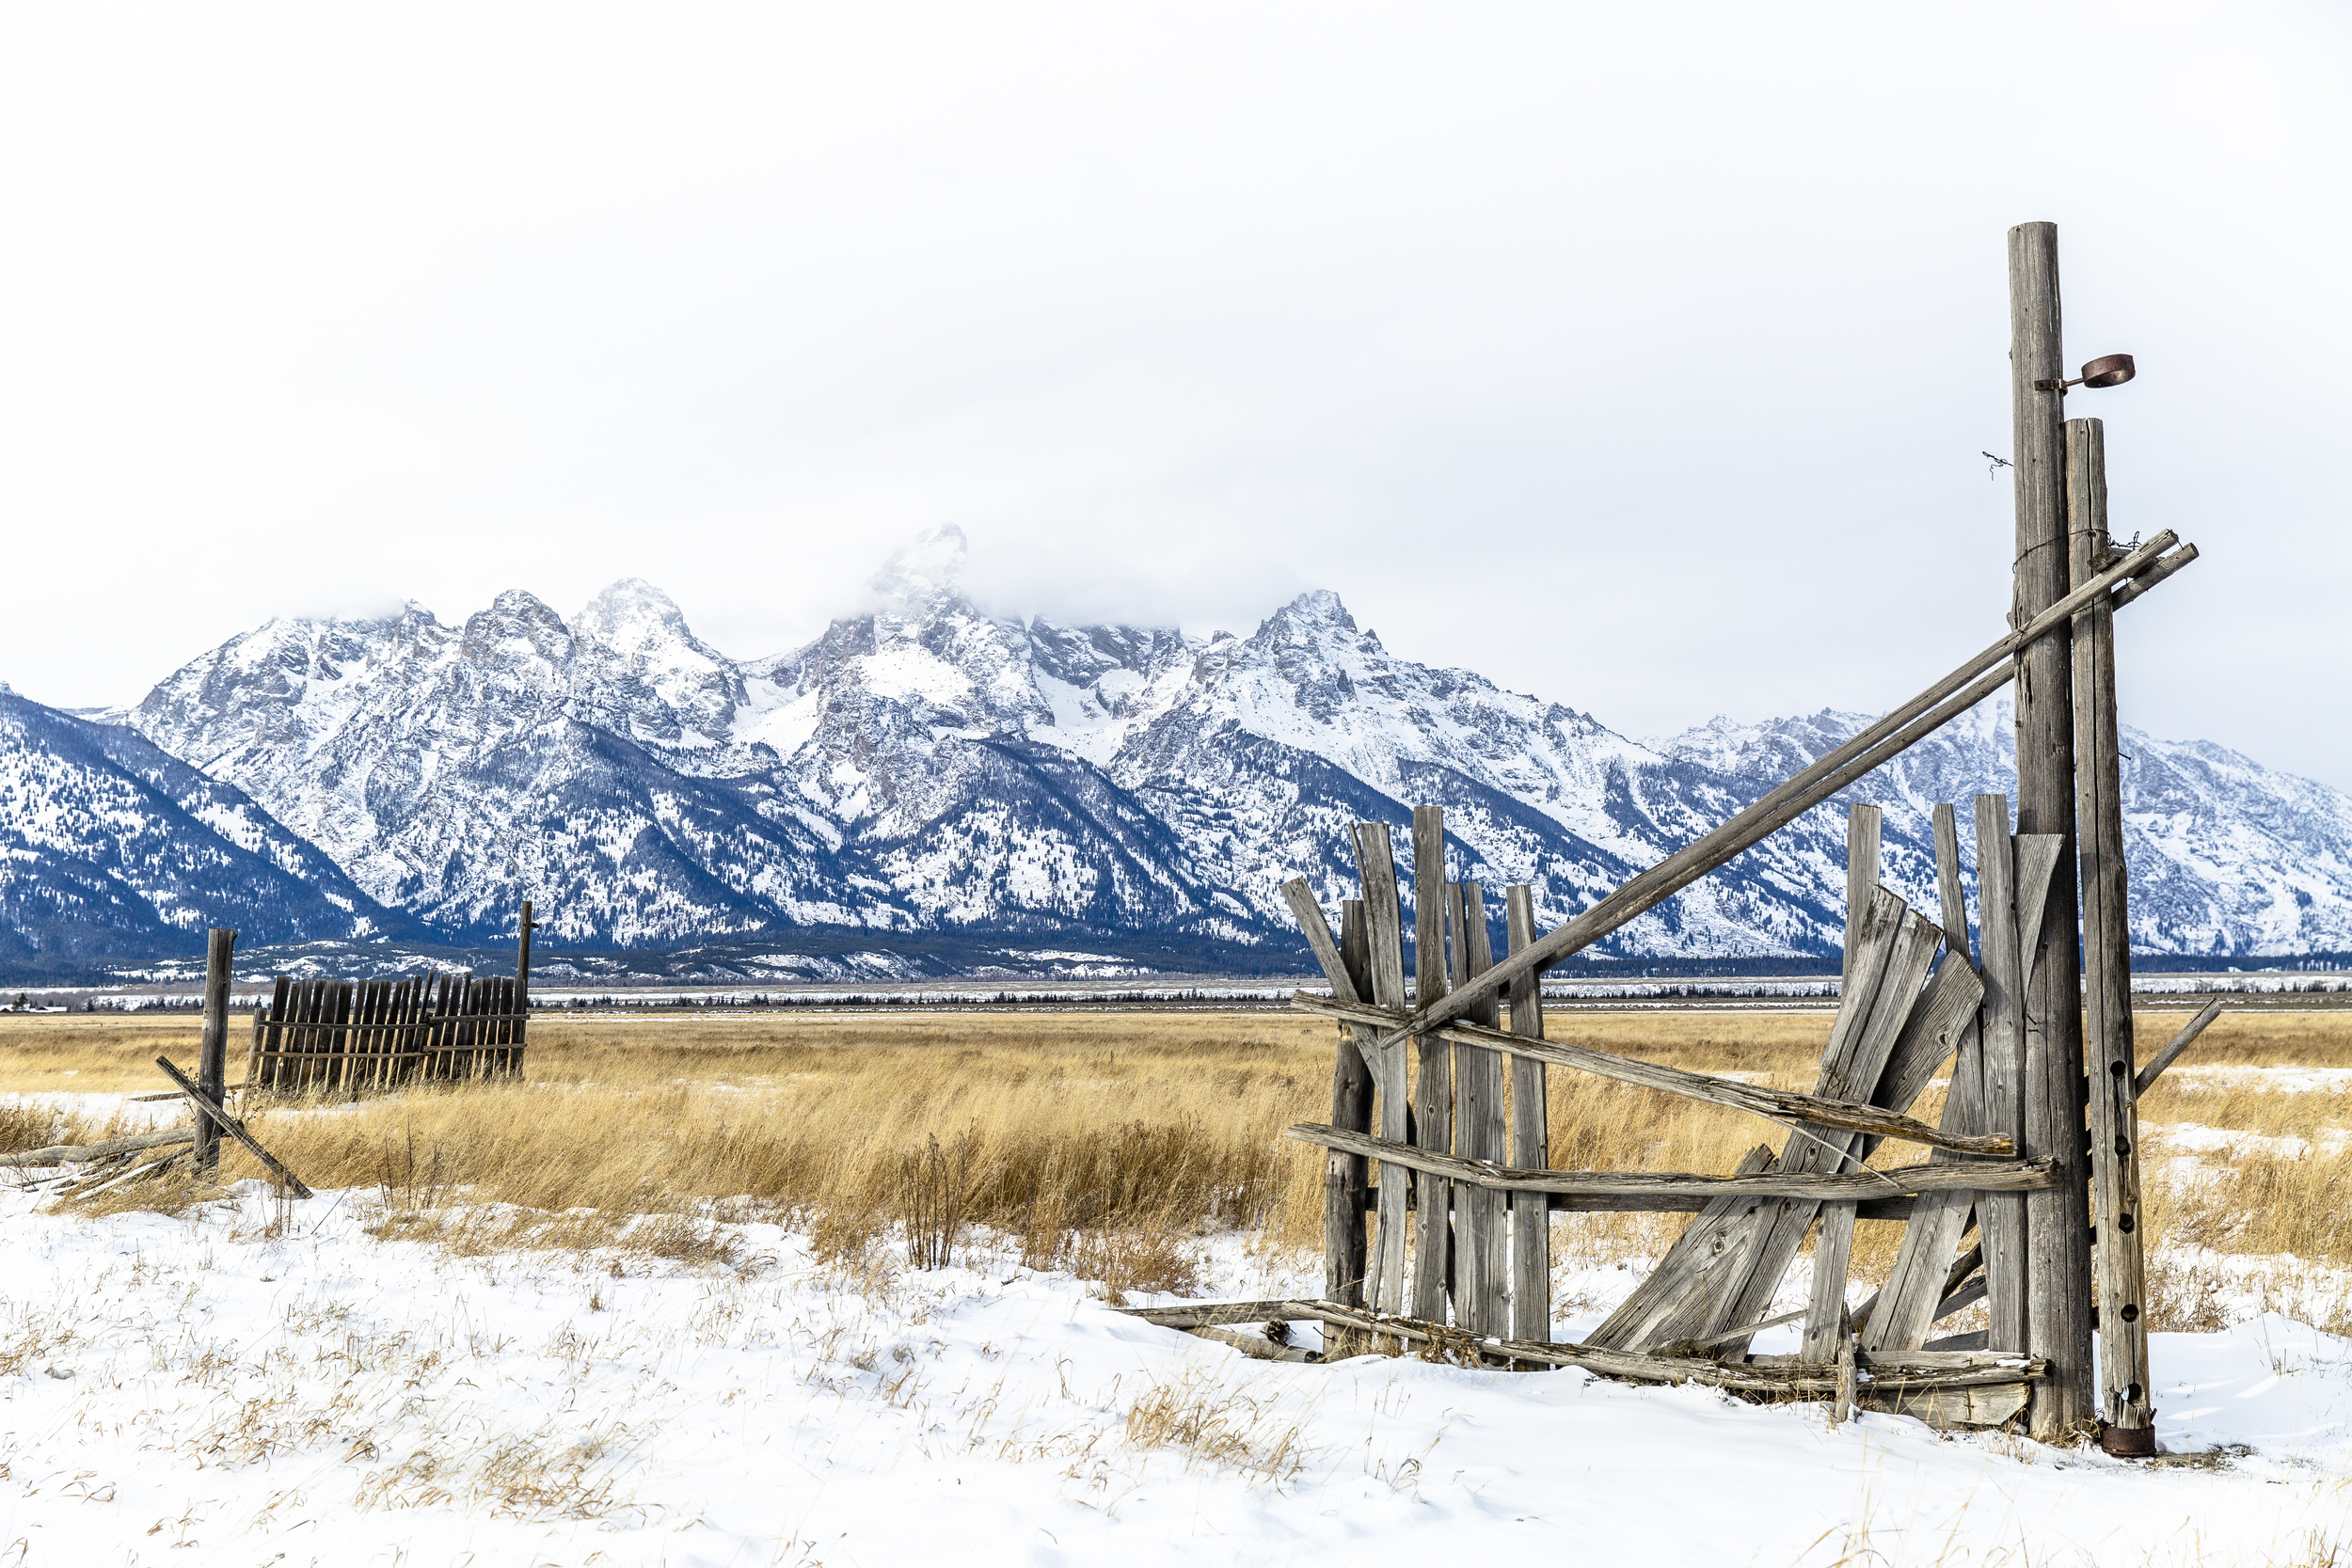 The Grand Tetons covered in snow, with an old fence in the foreground.